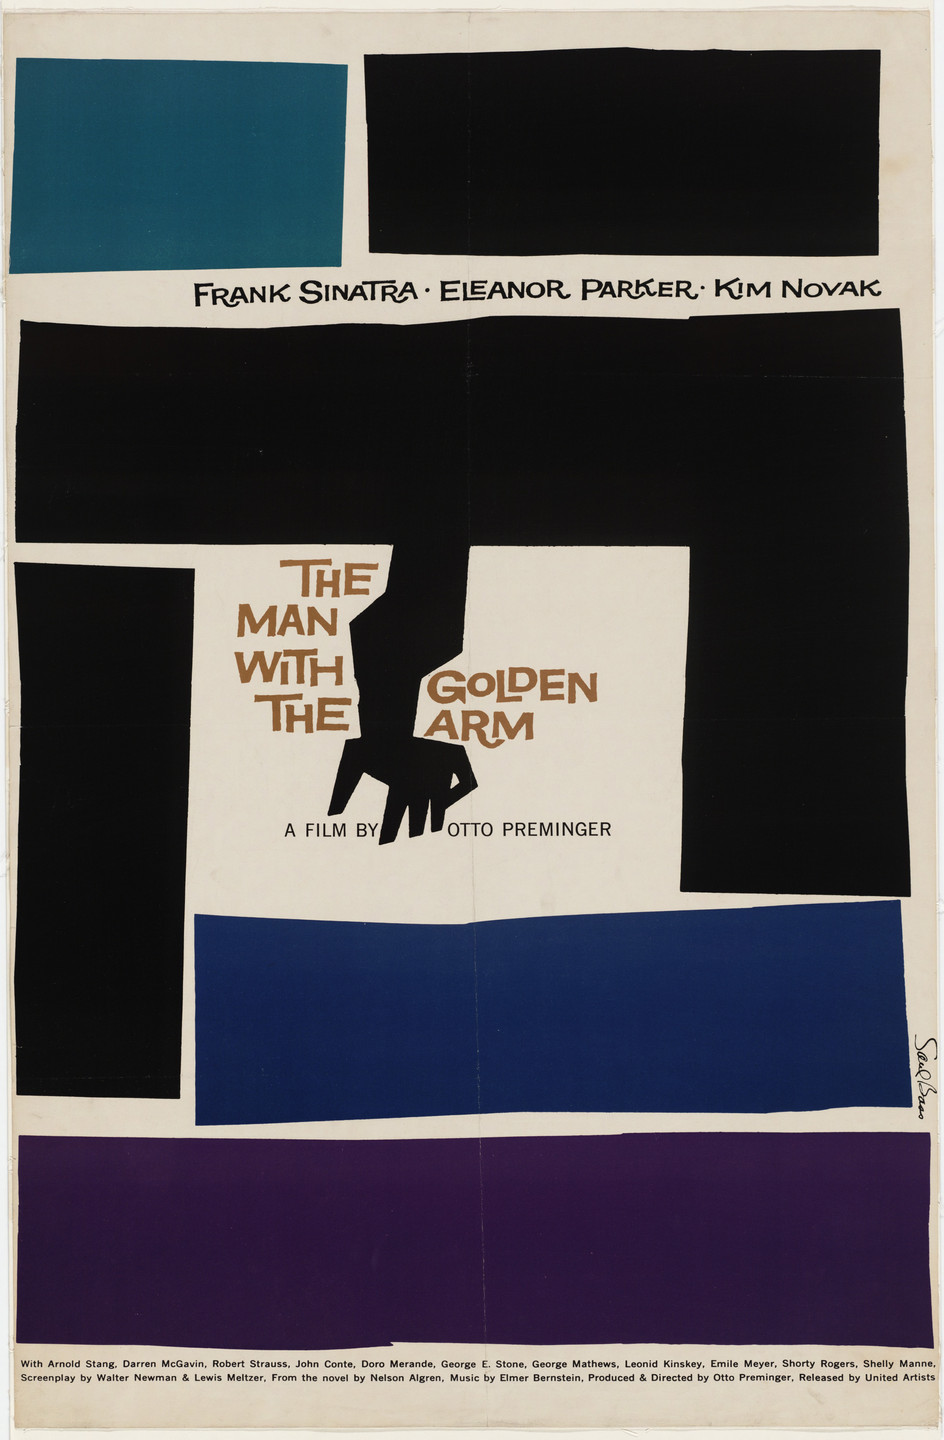 Saul Bass. Poster for the film The Man with the Golden Arm directed by Otto Preminger. 1955